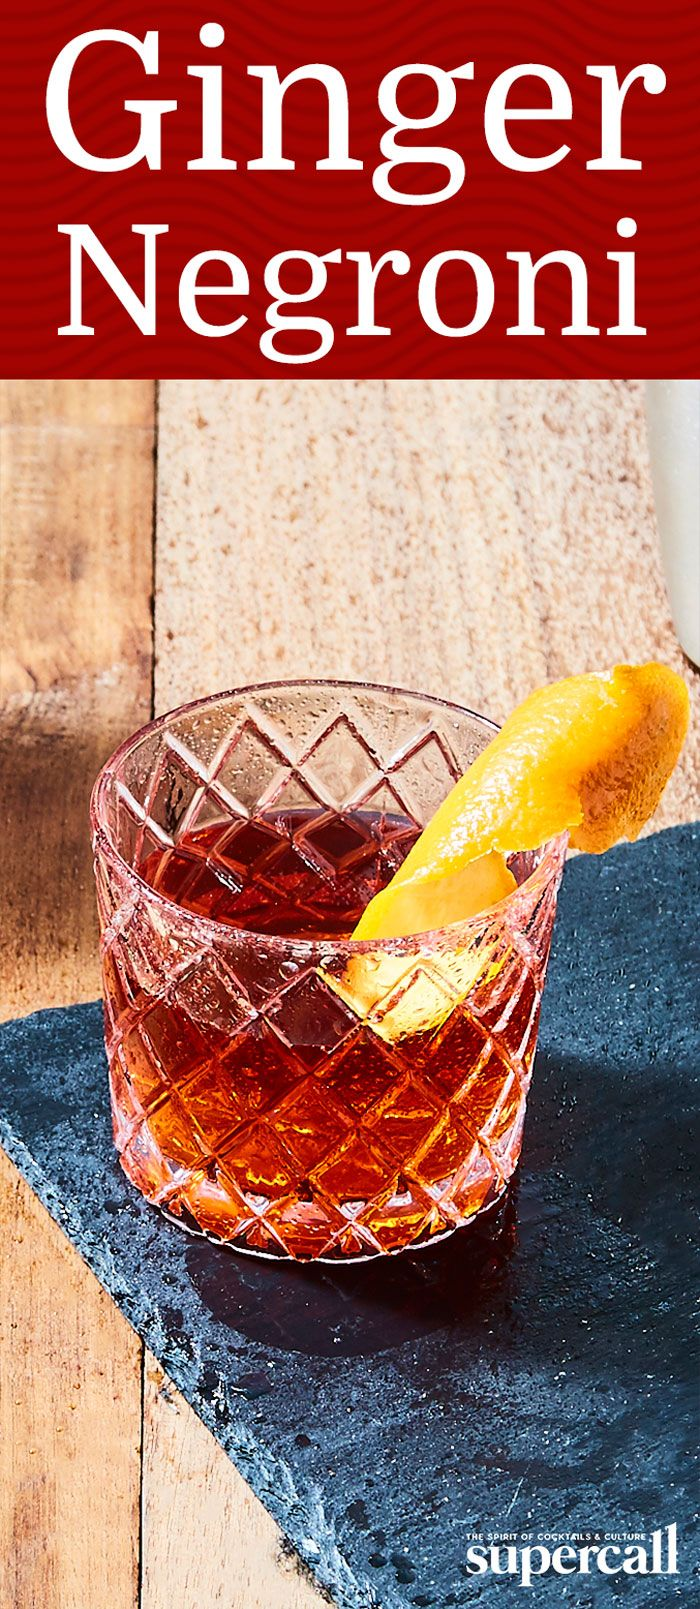 We love a Negroni twist, especially when it involves different spirits or a dose of fresh herbs. This variation gets an update from both cooling mint and spicy minced ginger. With two and a half ounces of gin, this version is also twice as strong as the classic recipe, so you're in for a good buzz when you mix one up.